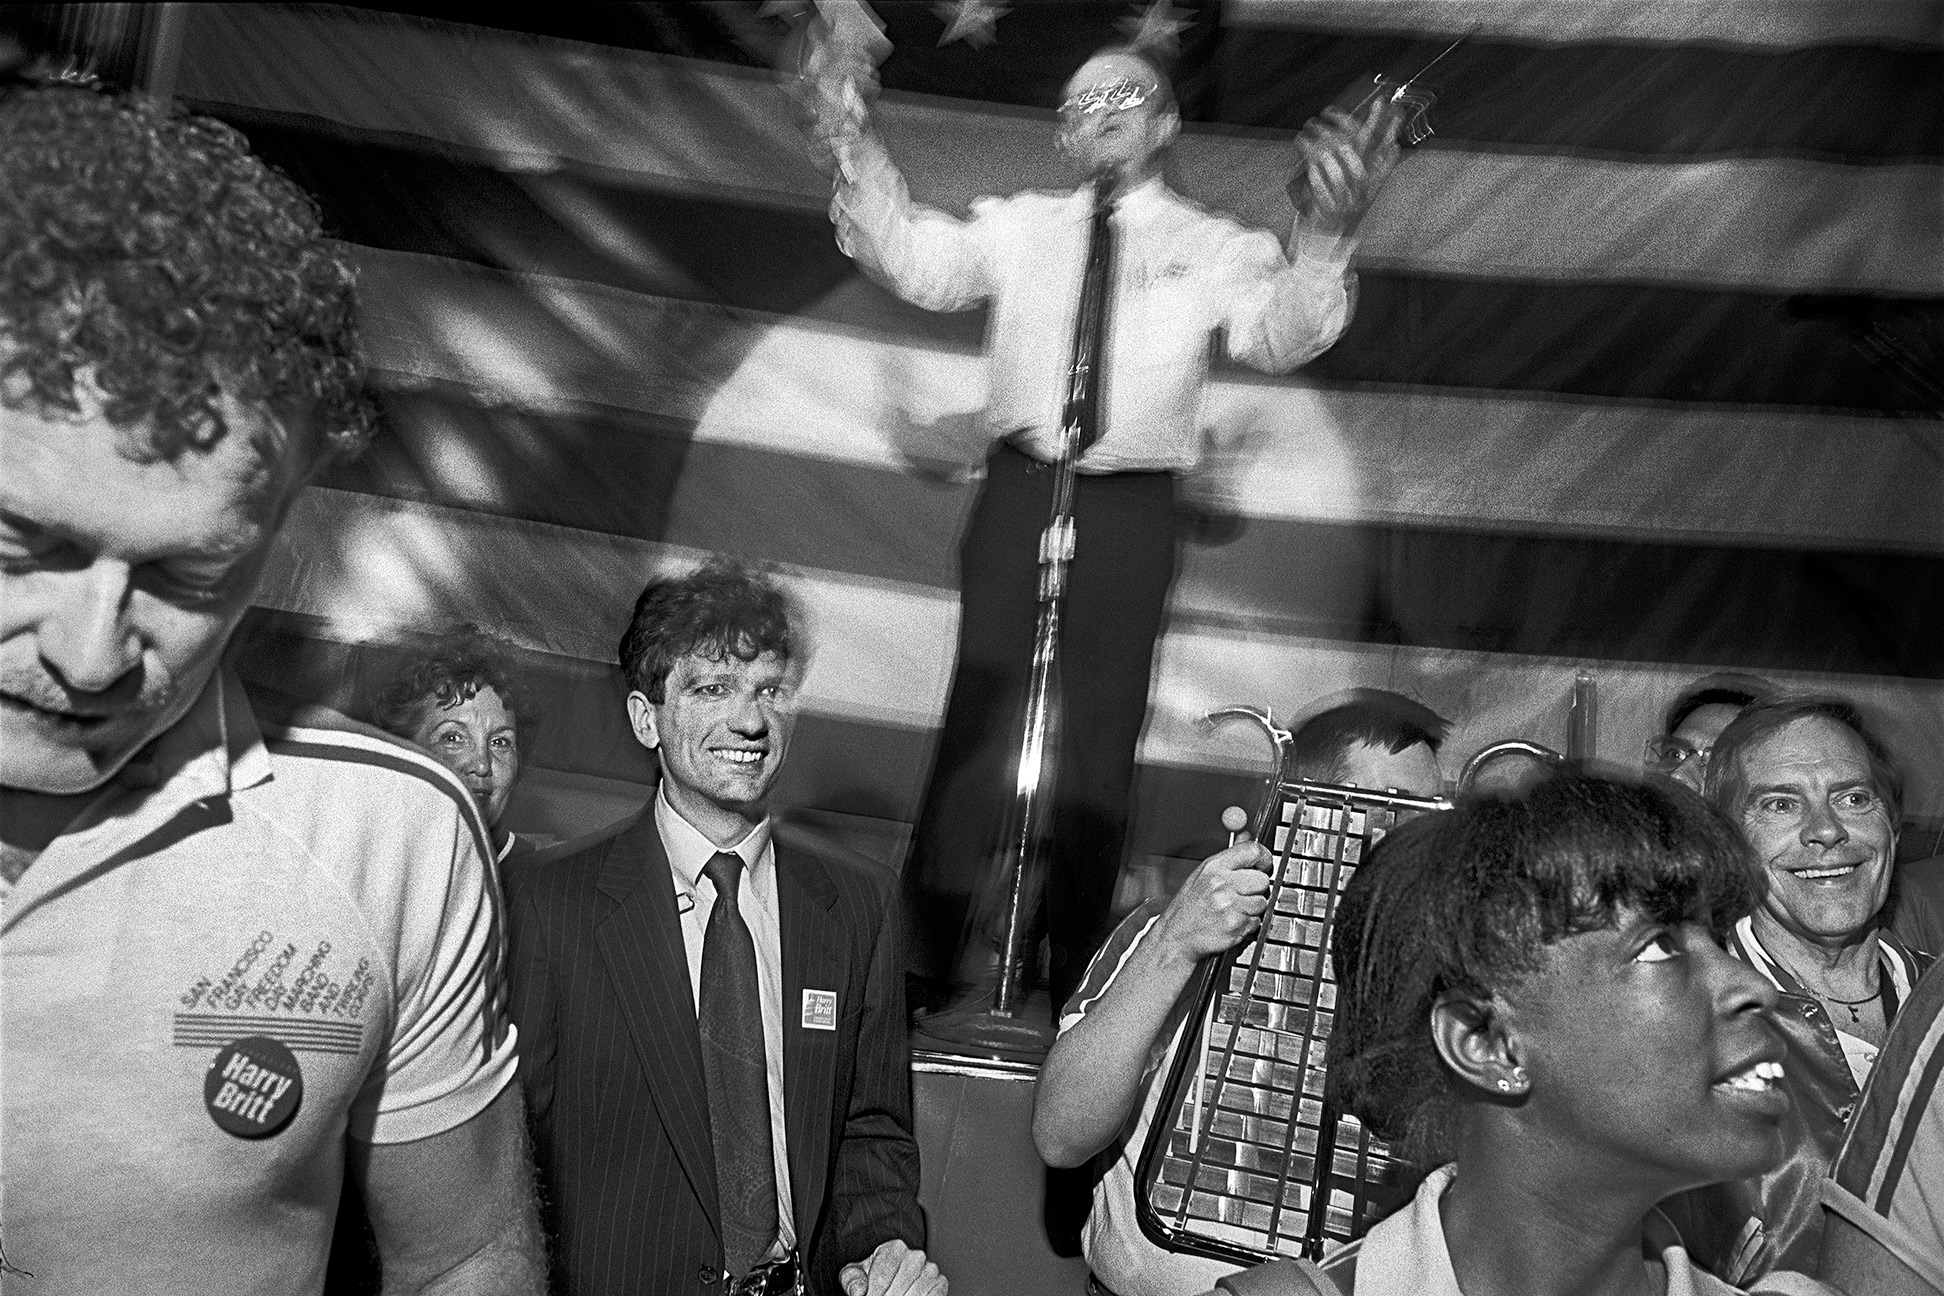 16-Election-Night-Flag-Guy-1-MASTER.jpg